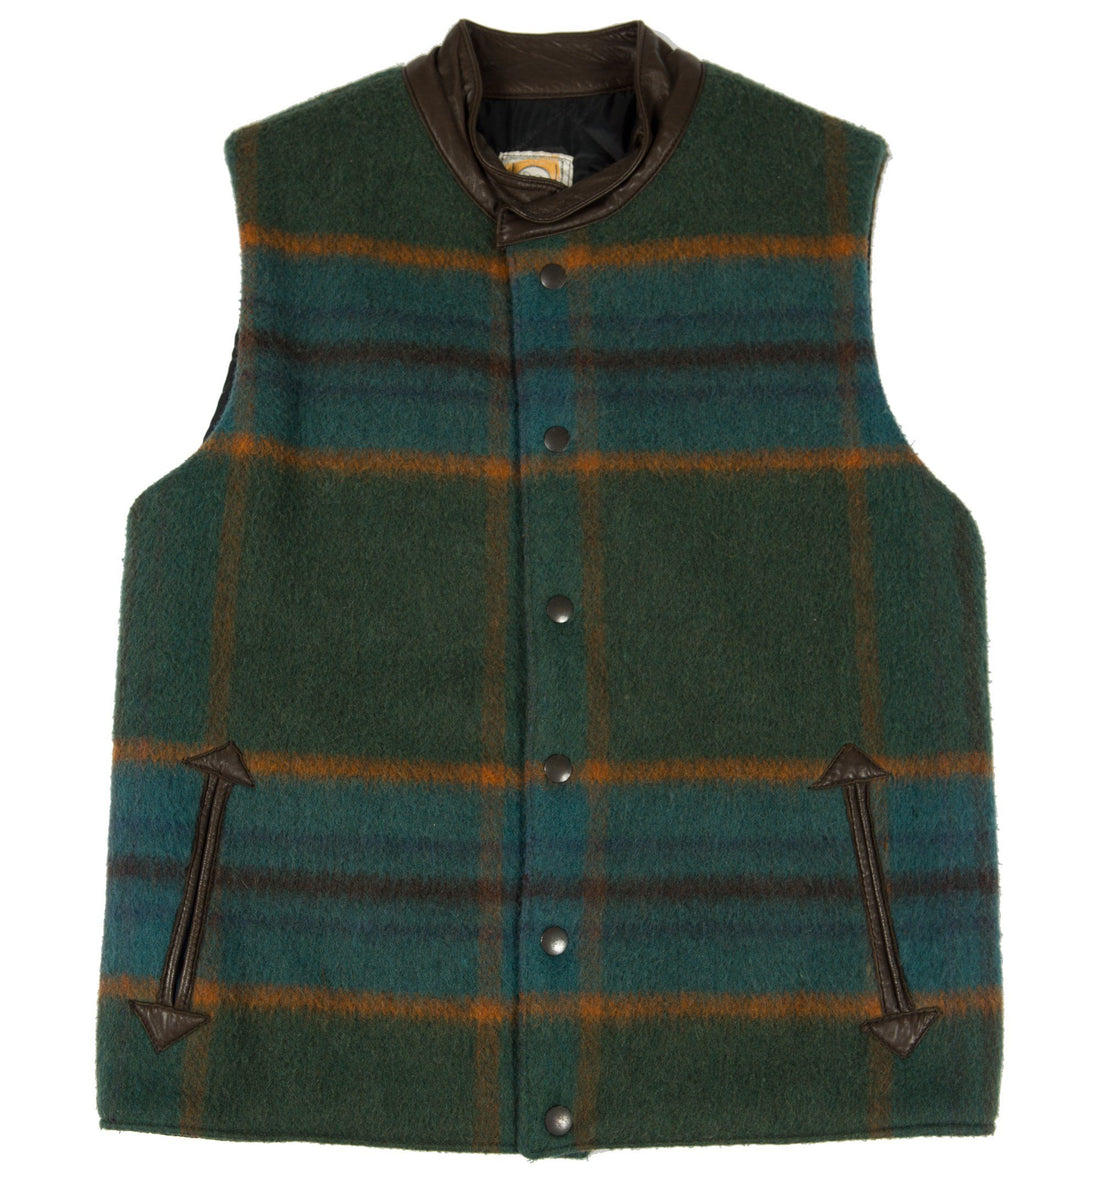 Vintage Shires Original Wool Plaid lined Vest - Vintage - Iron and Resin